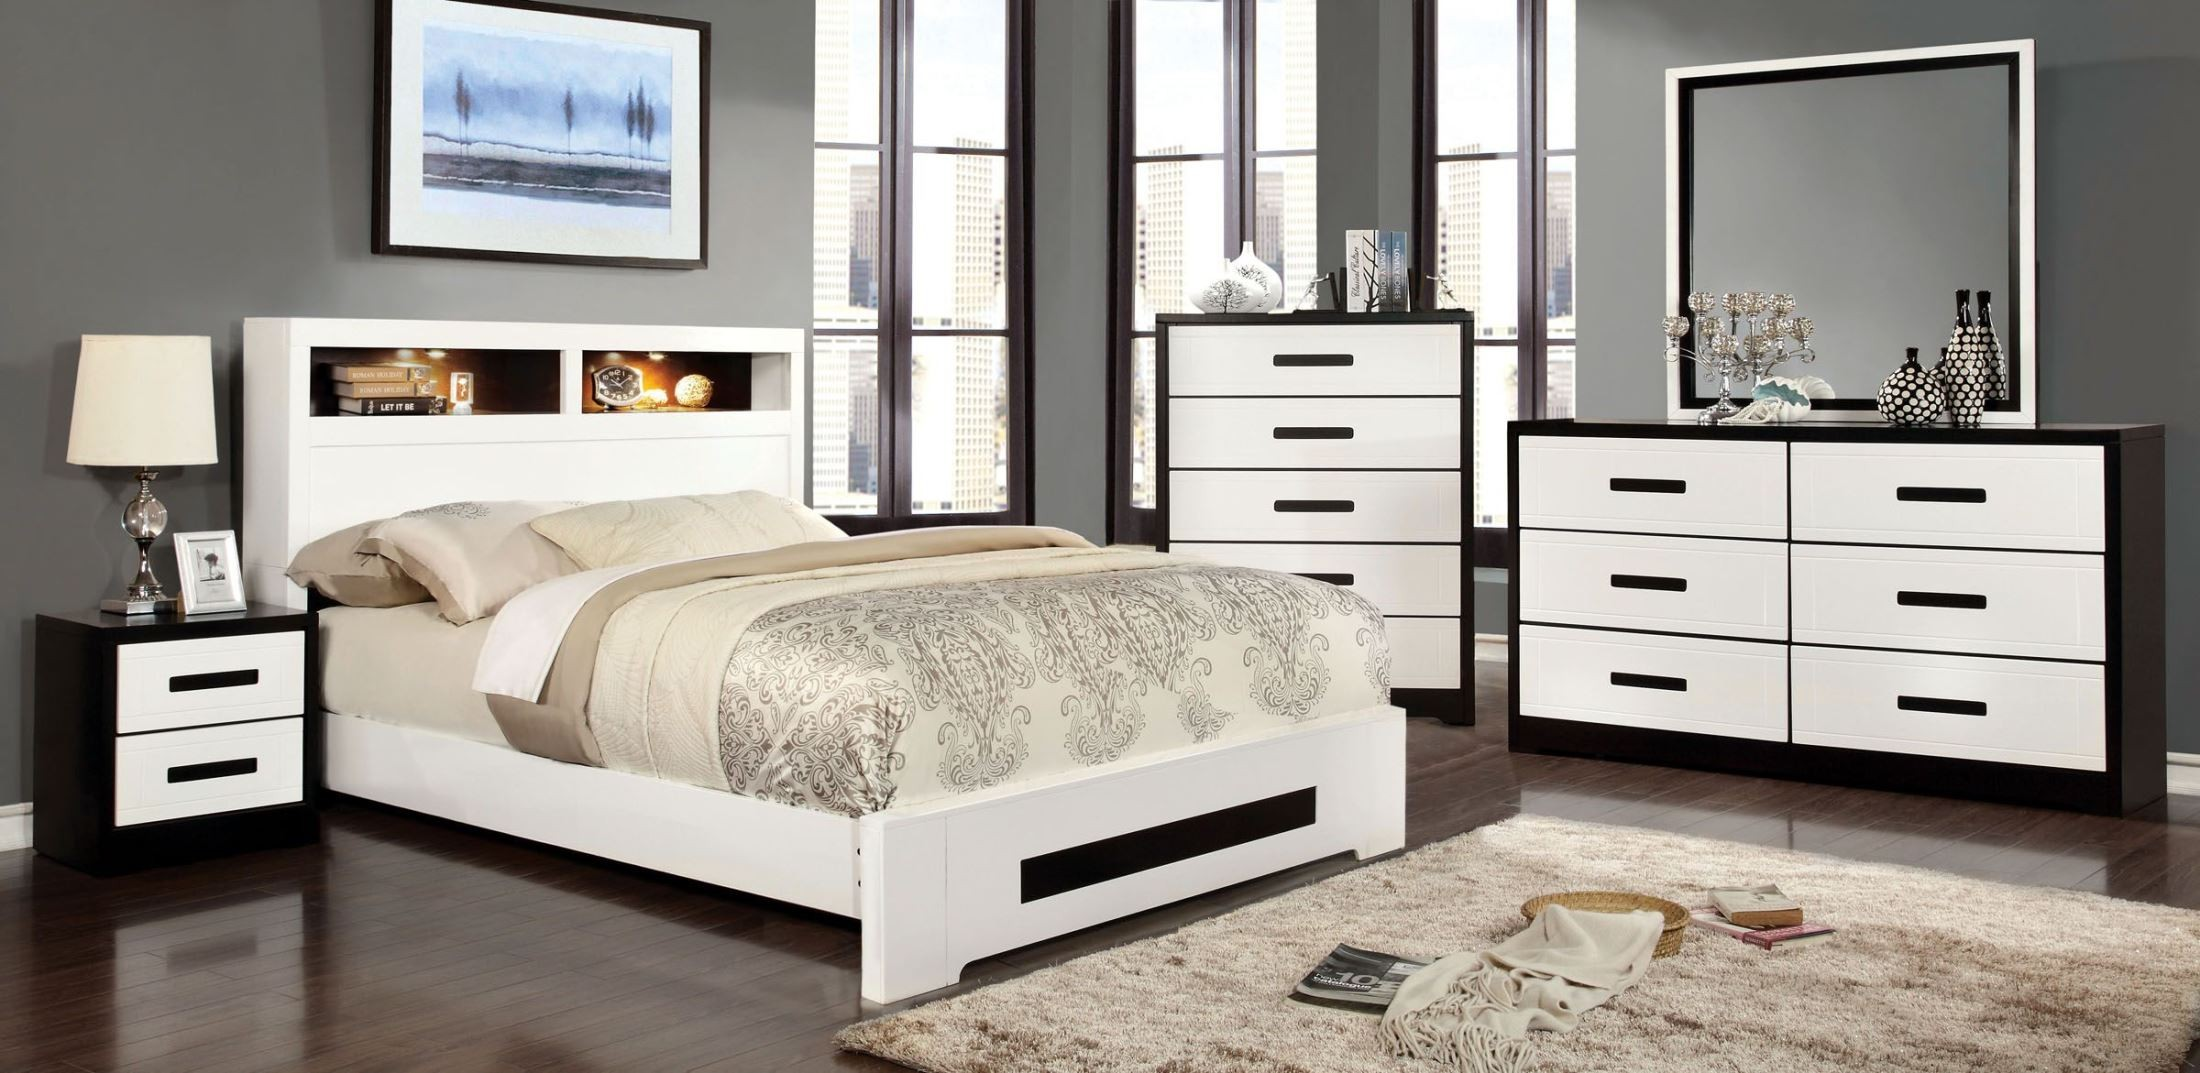 Rutger White And Black Youth Storage Panel Bedroom Set From Furniture Of America Cm7297f Bed